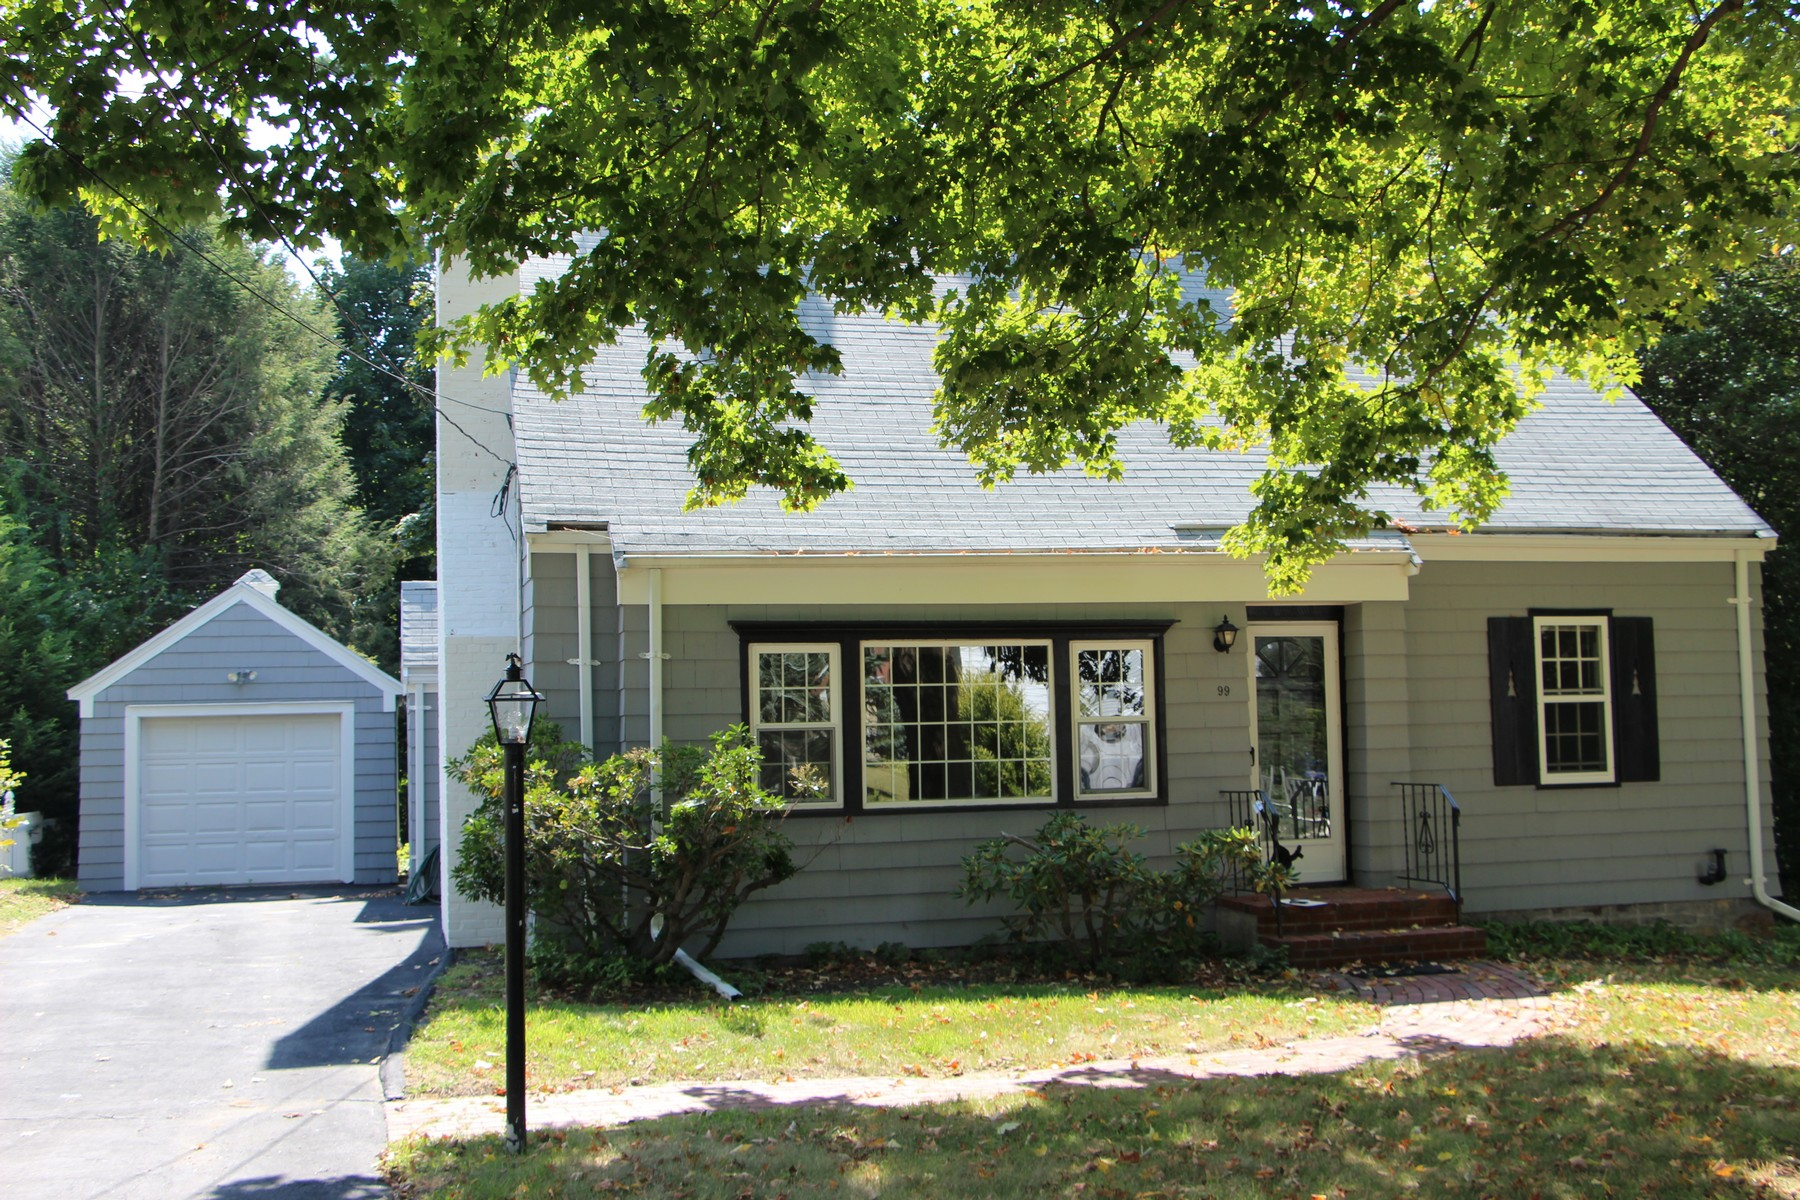 sales property at Trumbull Cape: Great Neighborhood, Great Charm, Great Value!